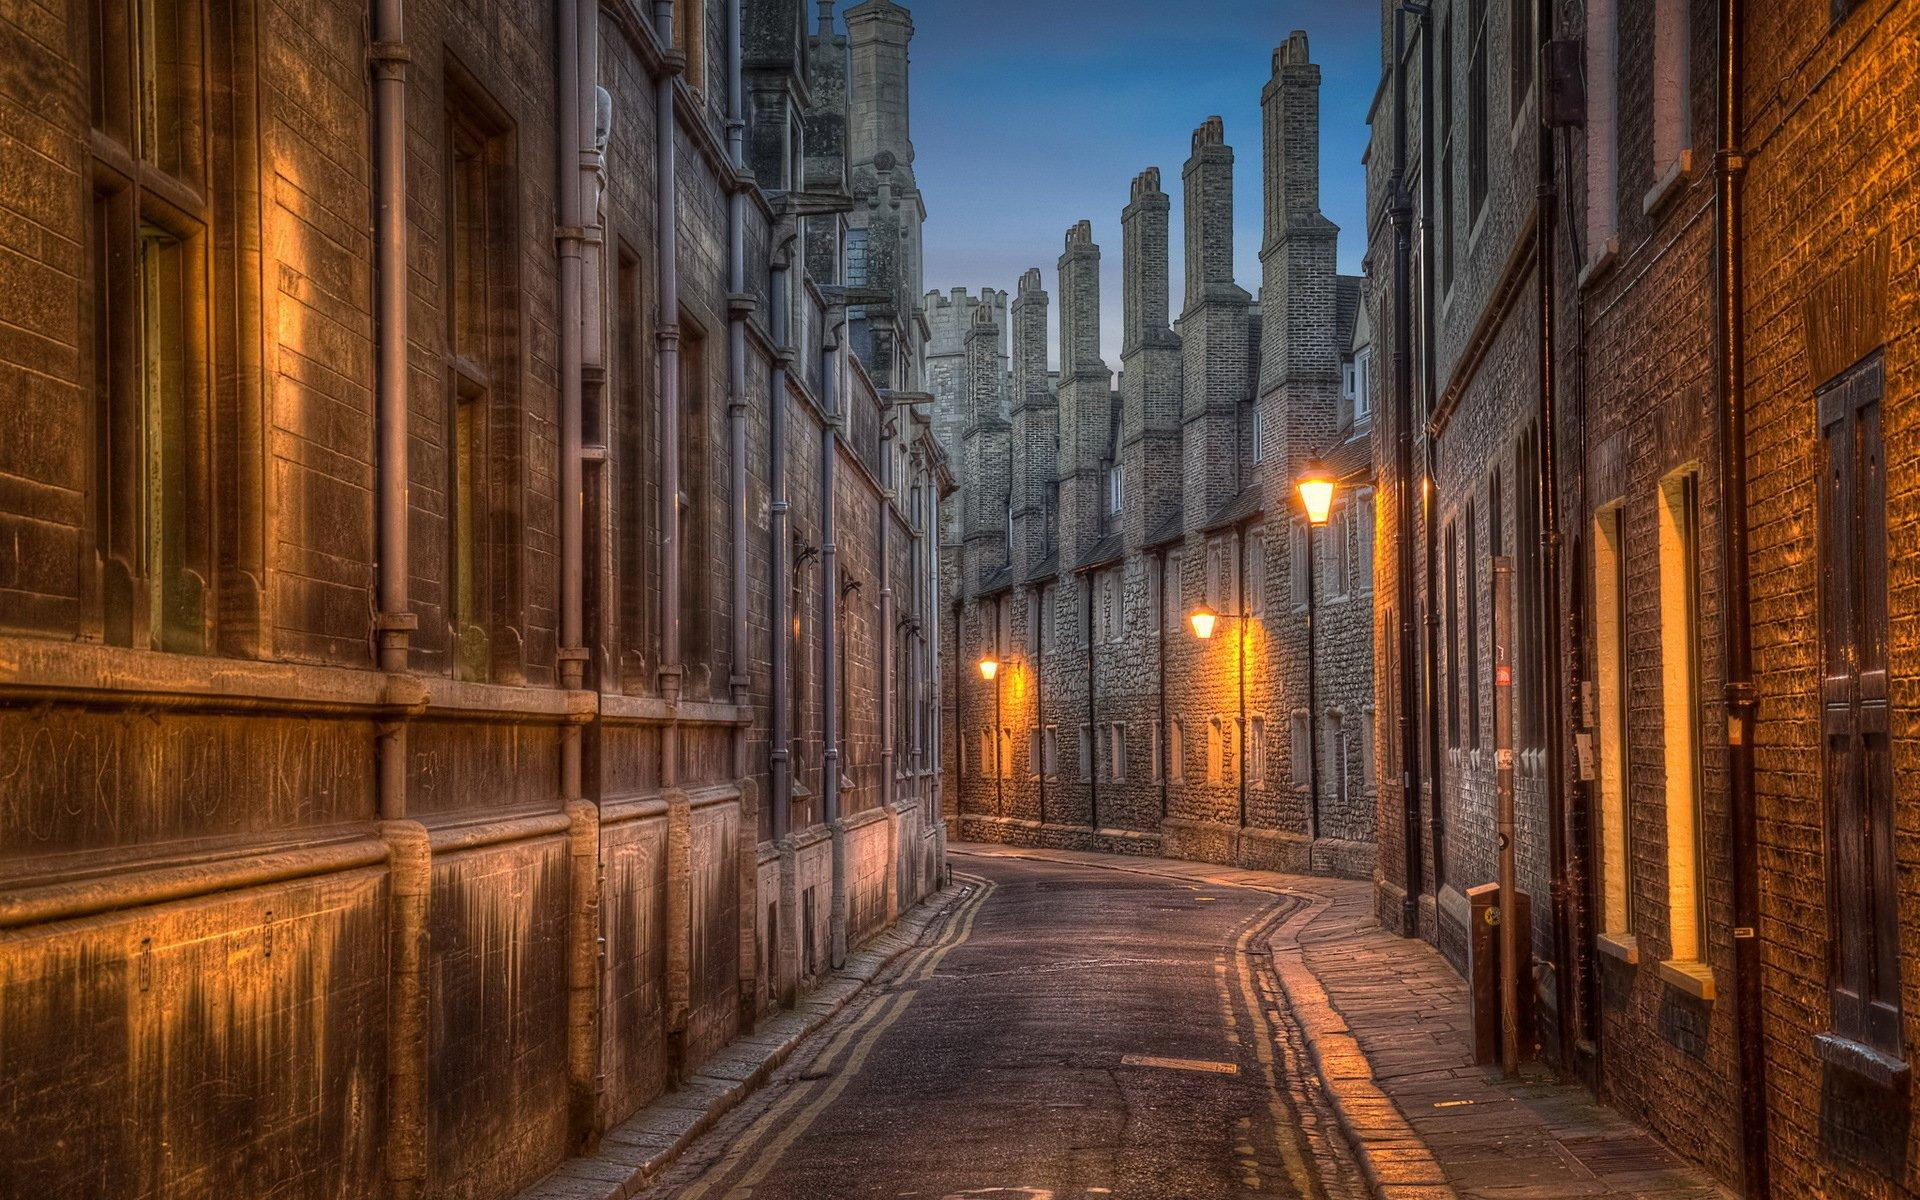 Trinity Lane, street in Cambridge HD Wallpaper | Background Image ...